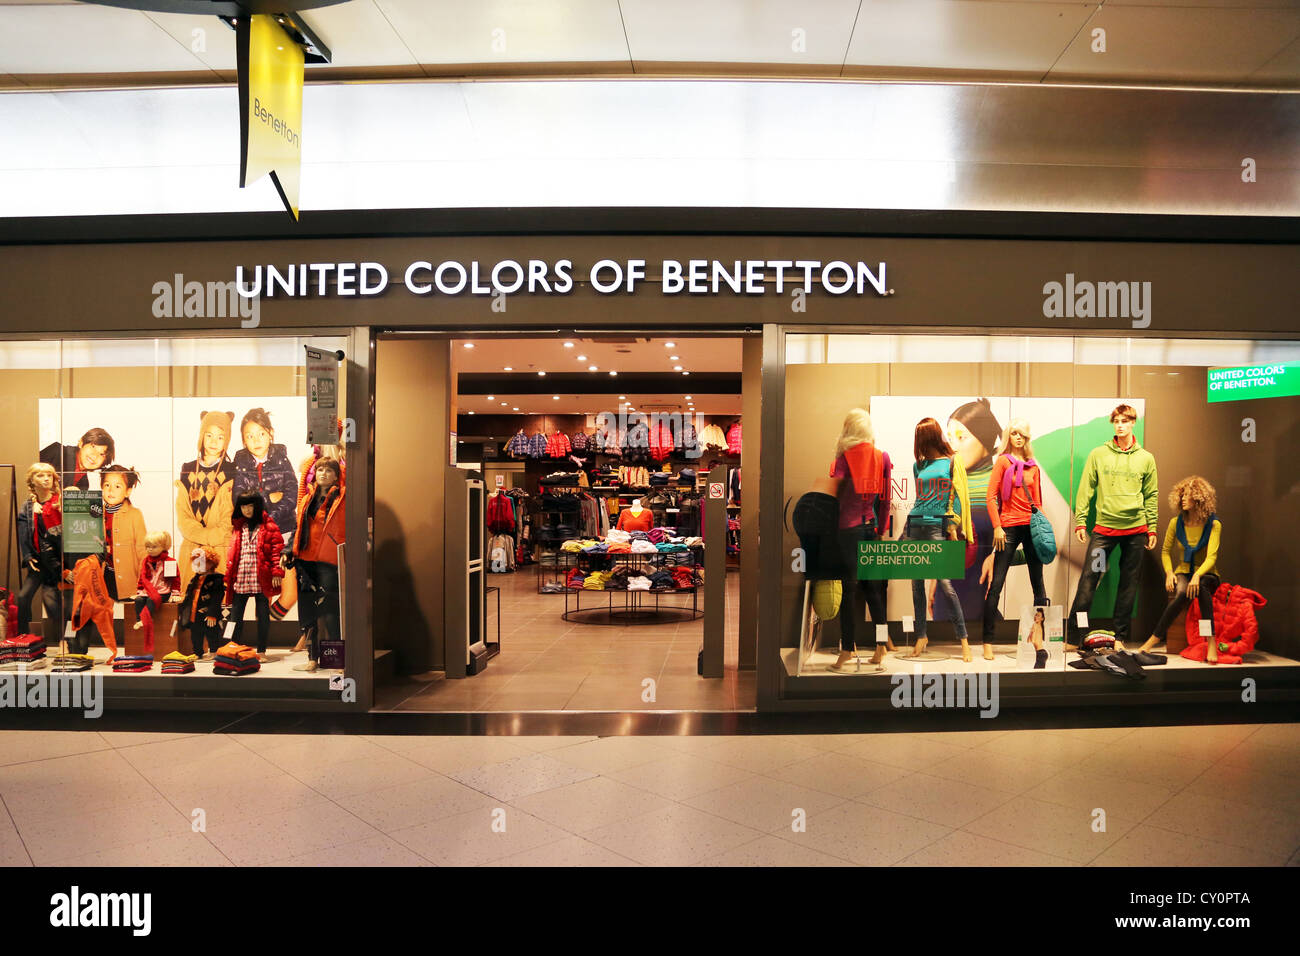 calais france cite europe united colours of benetton